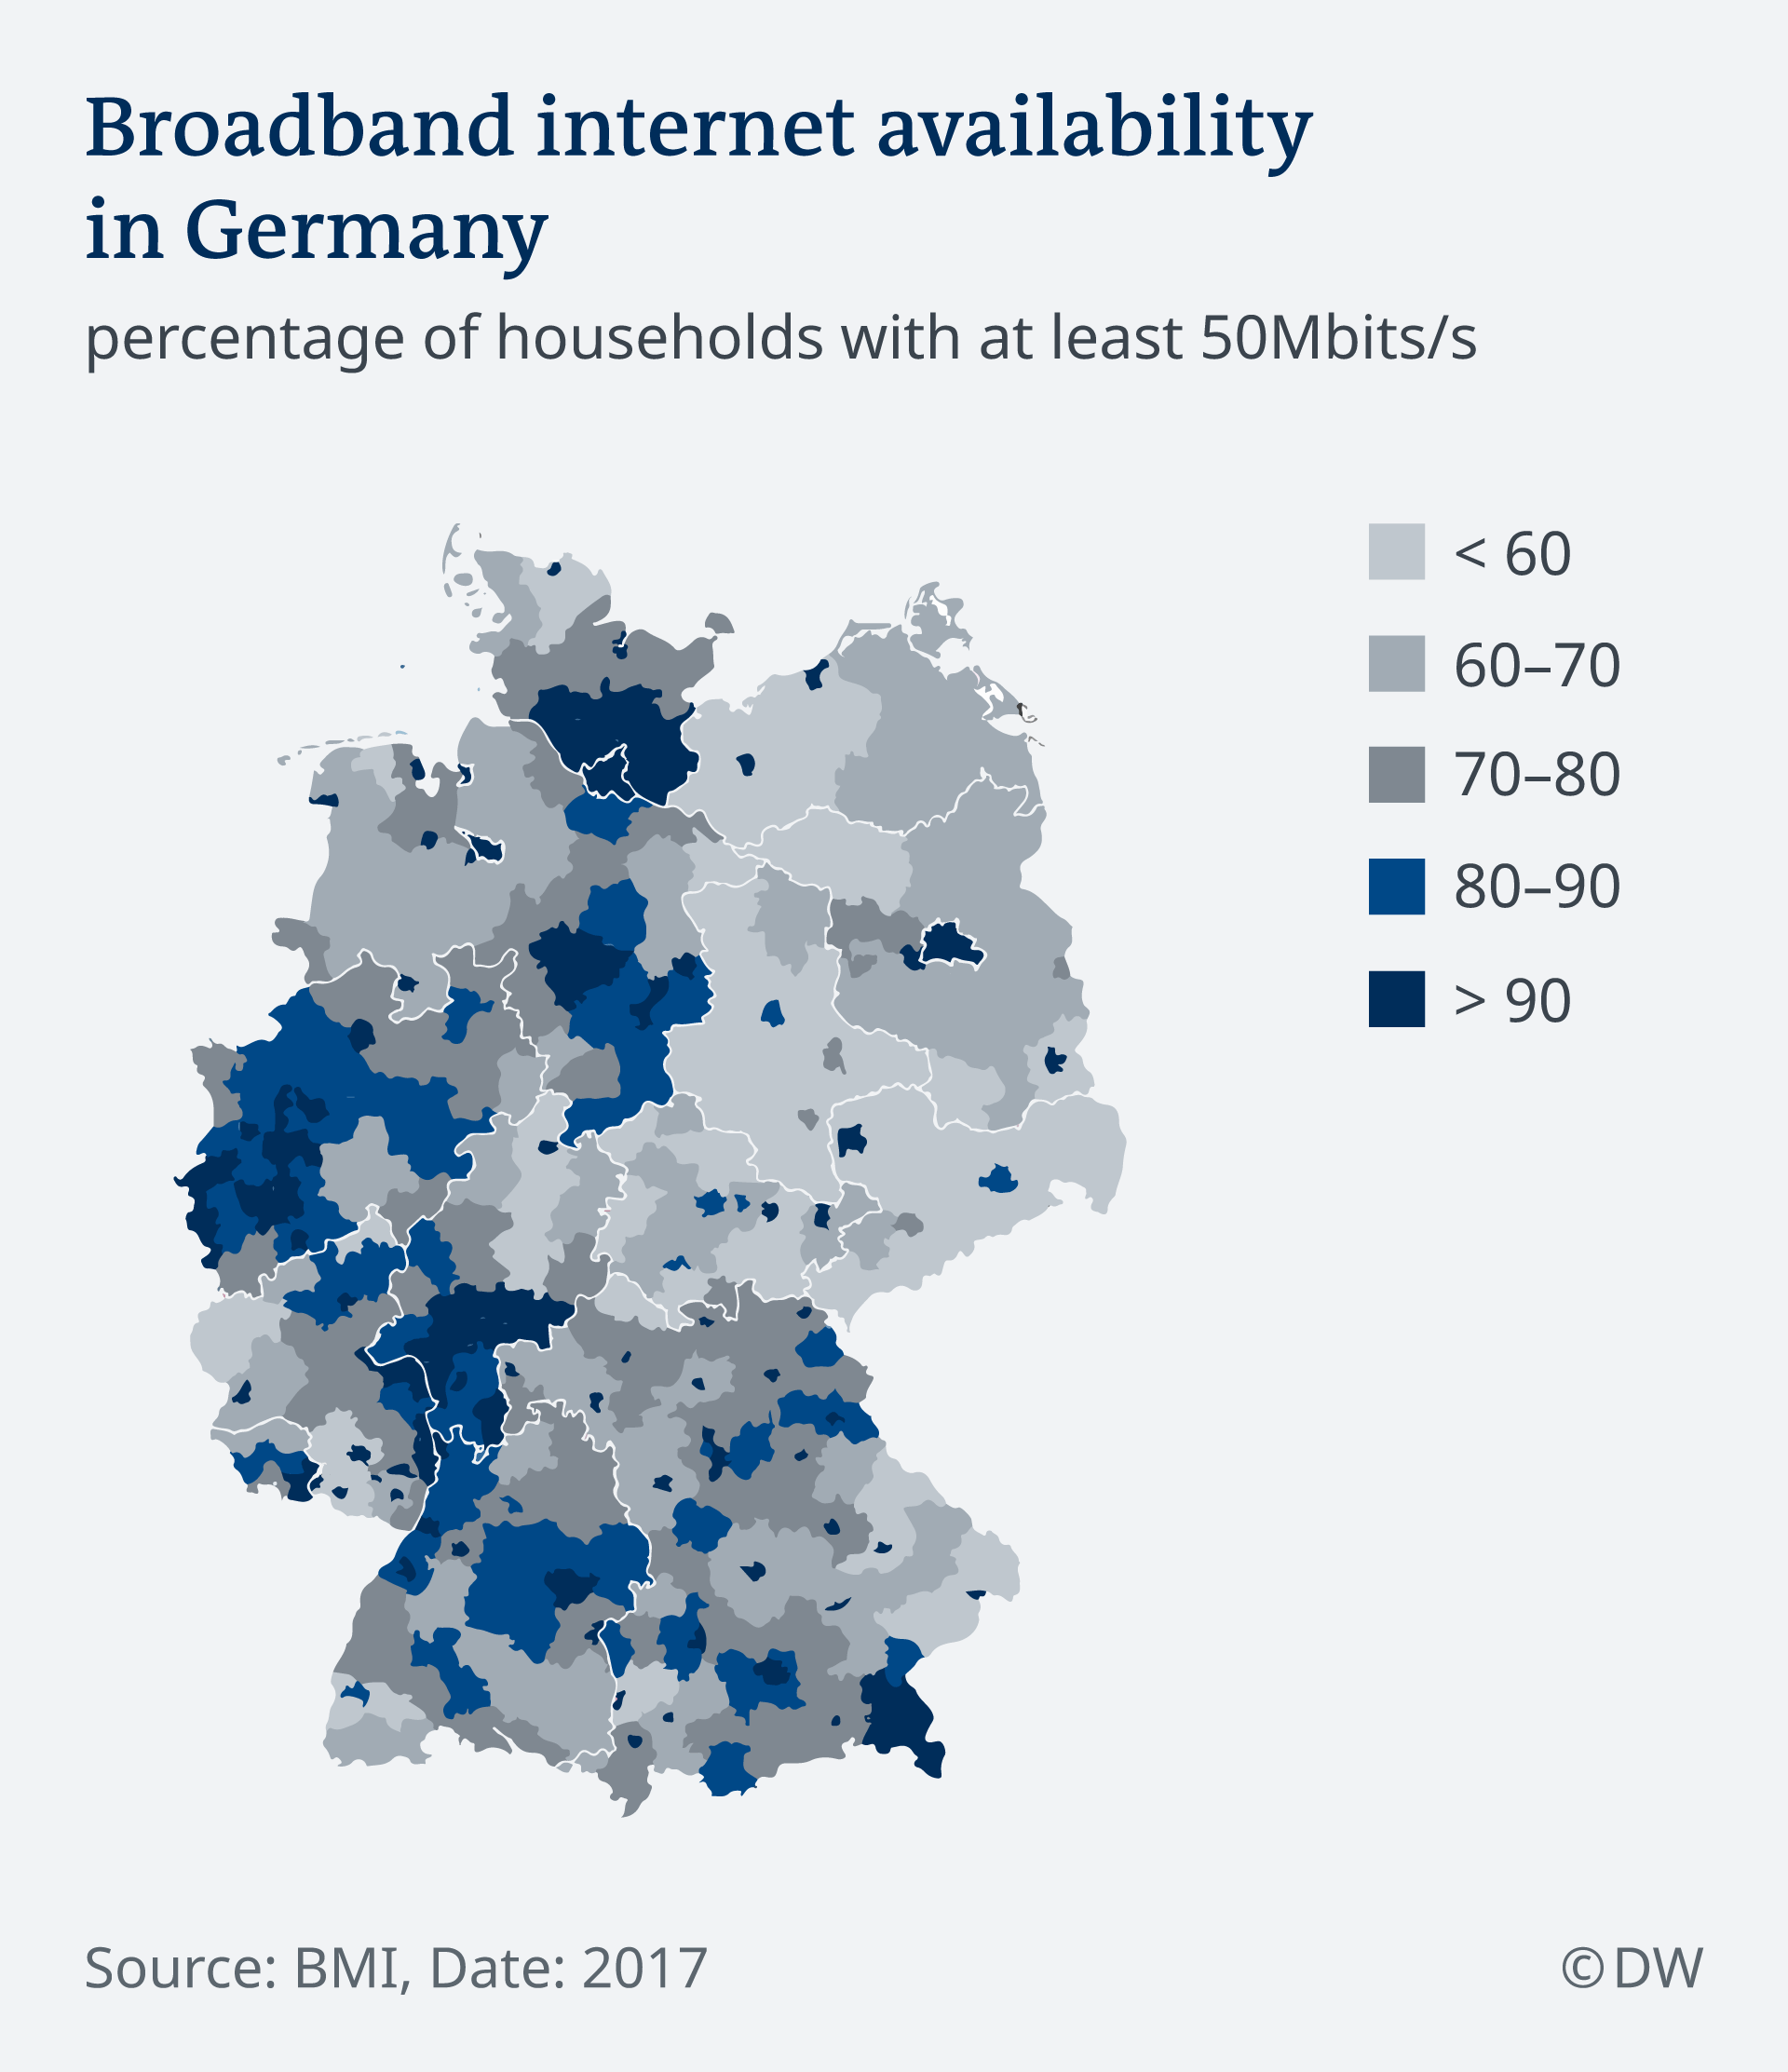 Map showing broadband internet availability in Germany